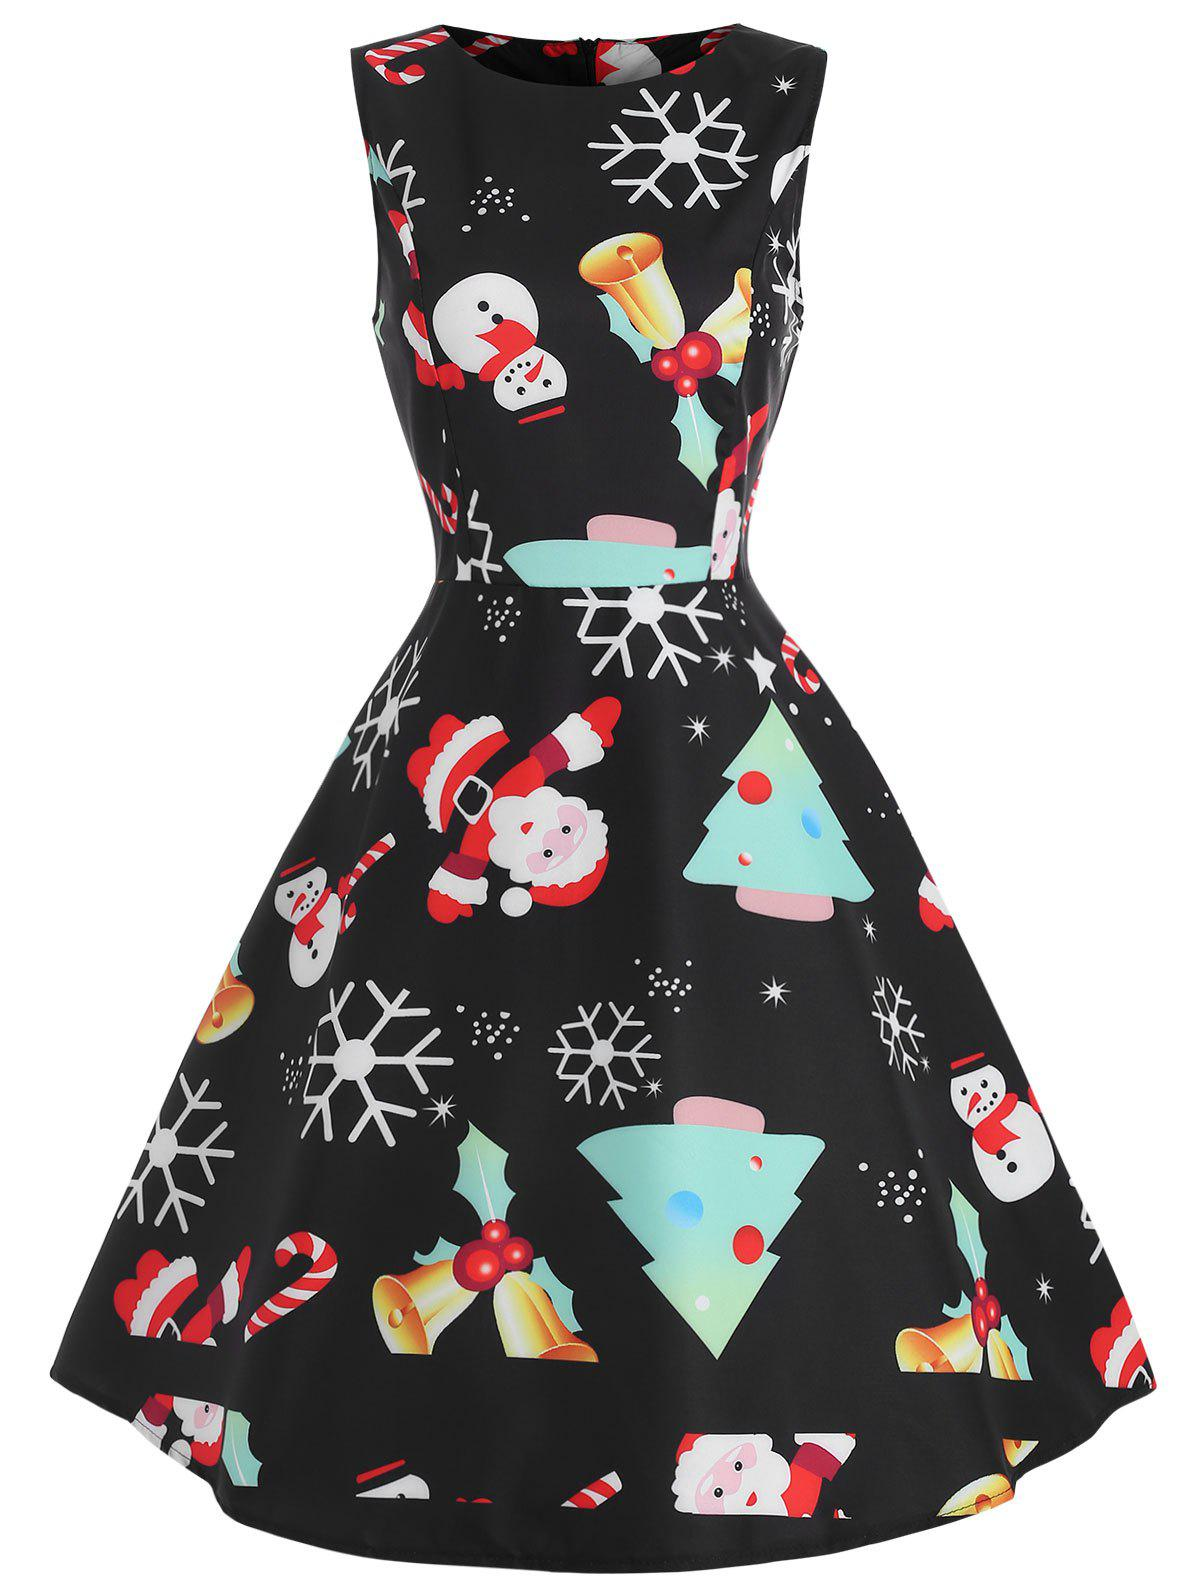 New Christmas Graphic Fit and Flare Dress